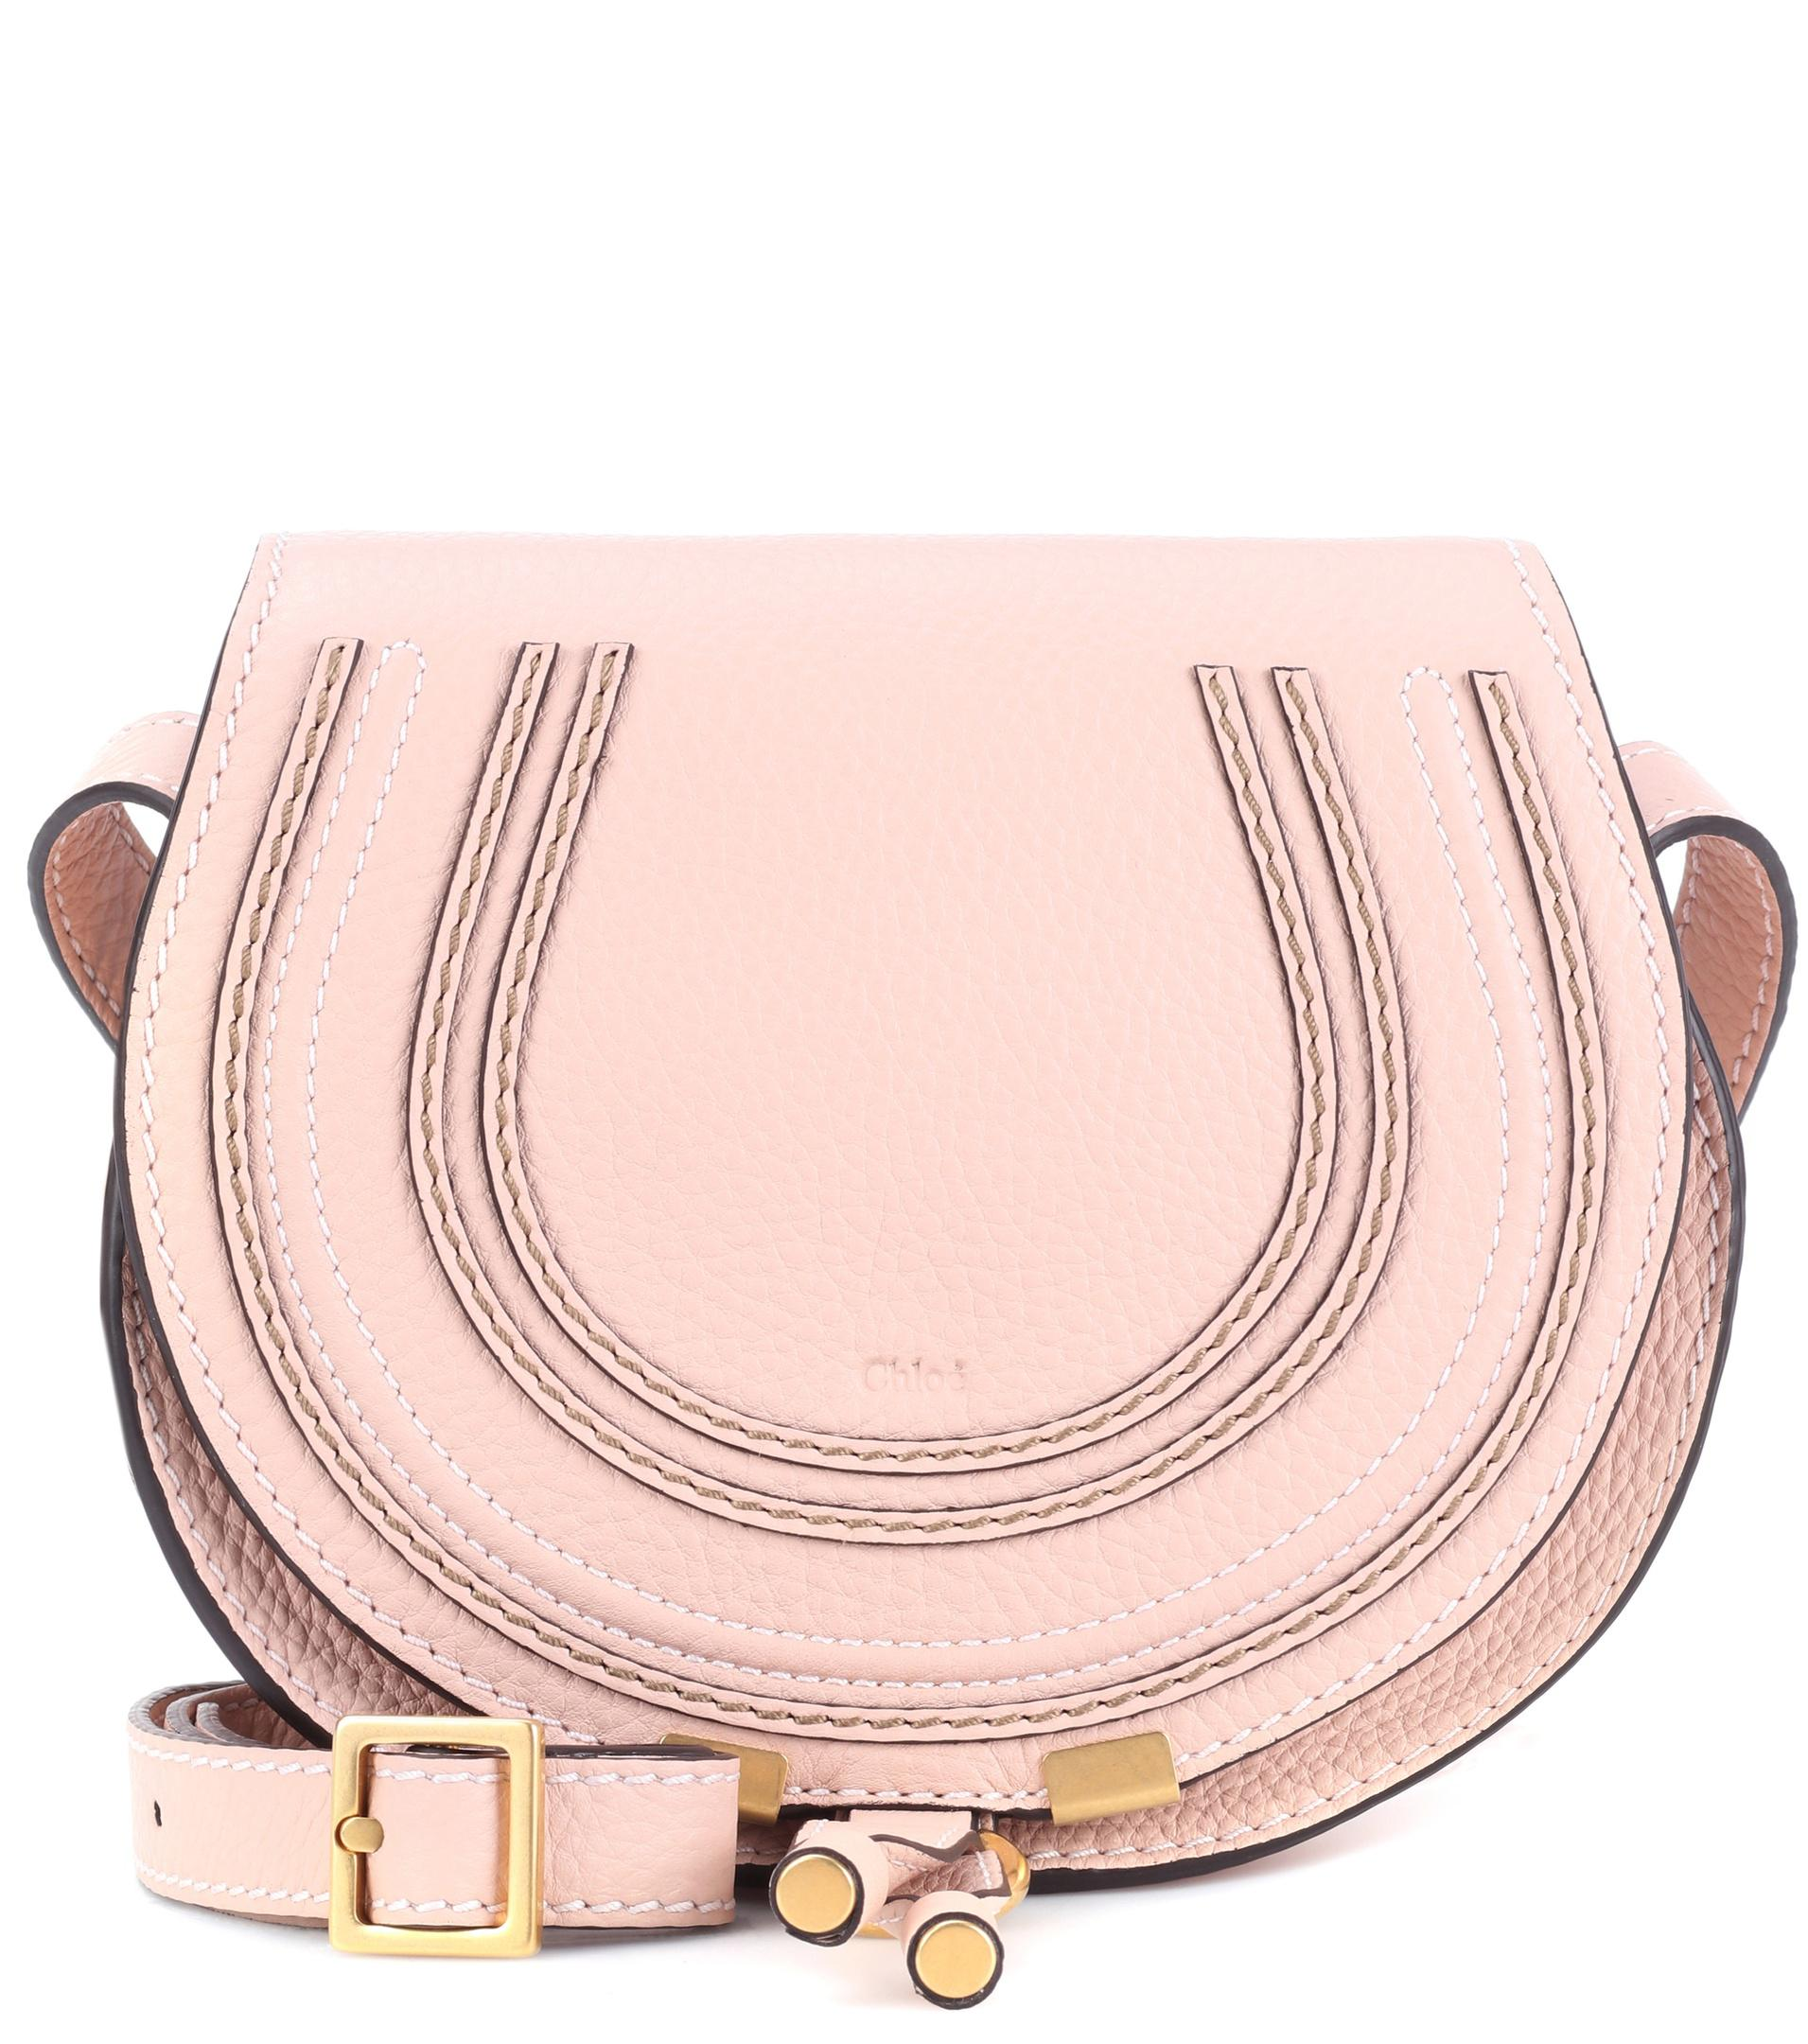 Lyst - Chloé Marcie Small Leather Shoulder Bag in Natural 5f8a1cb858